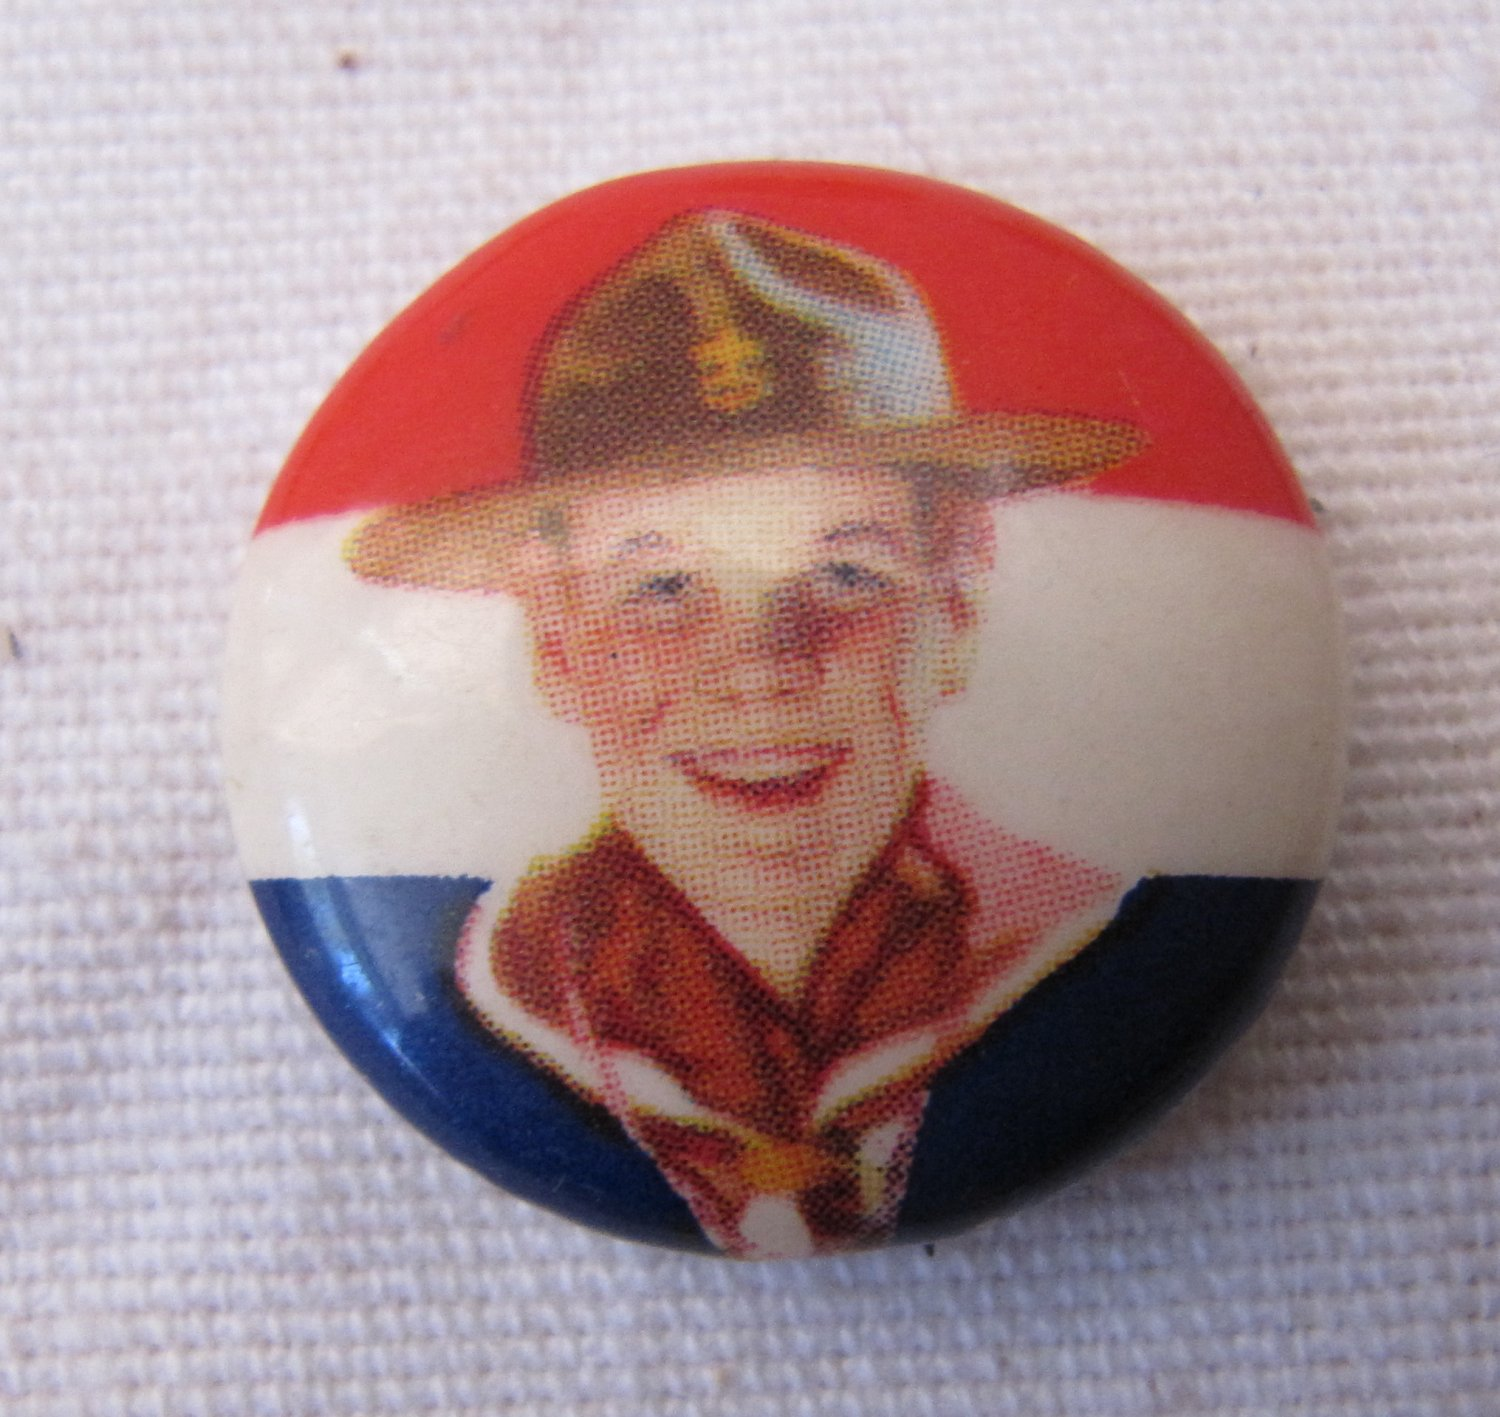 Vintage Boy Scout Smiling Face Hat Pinback Pin Button Offset Gravure Celluloid Litho .875 Inch